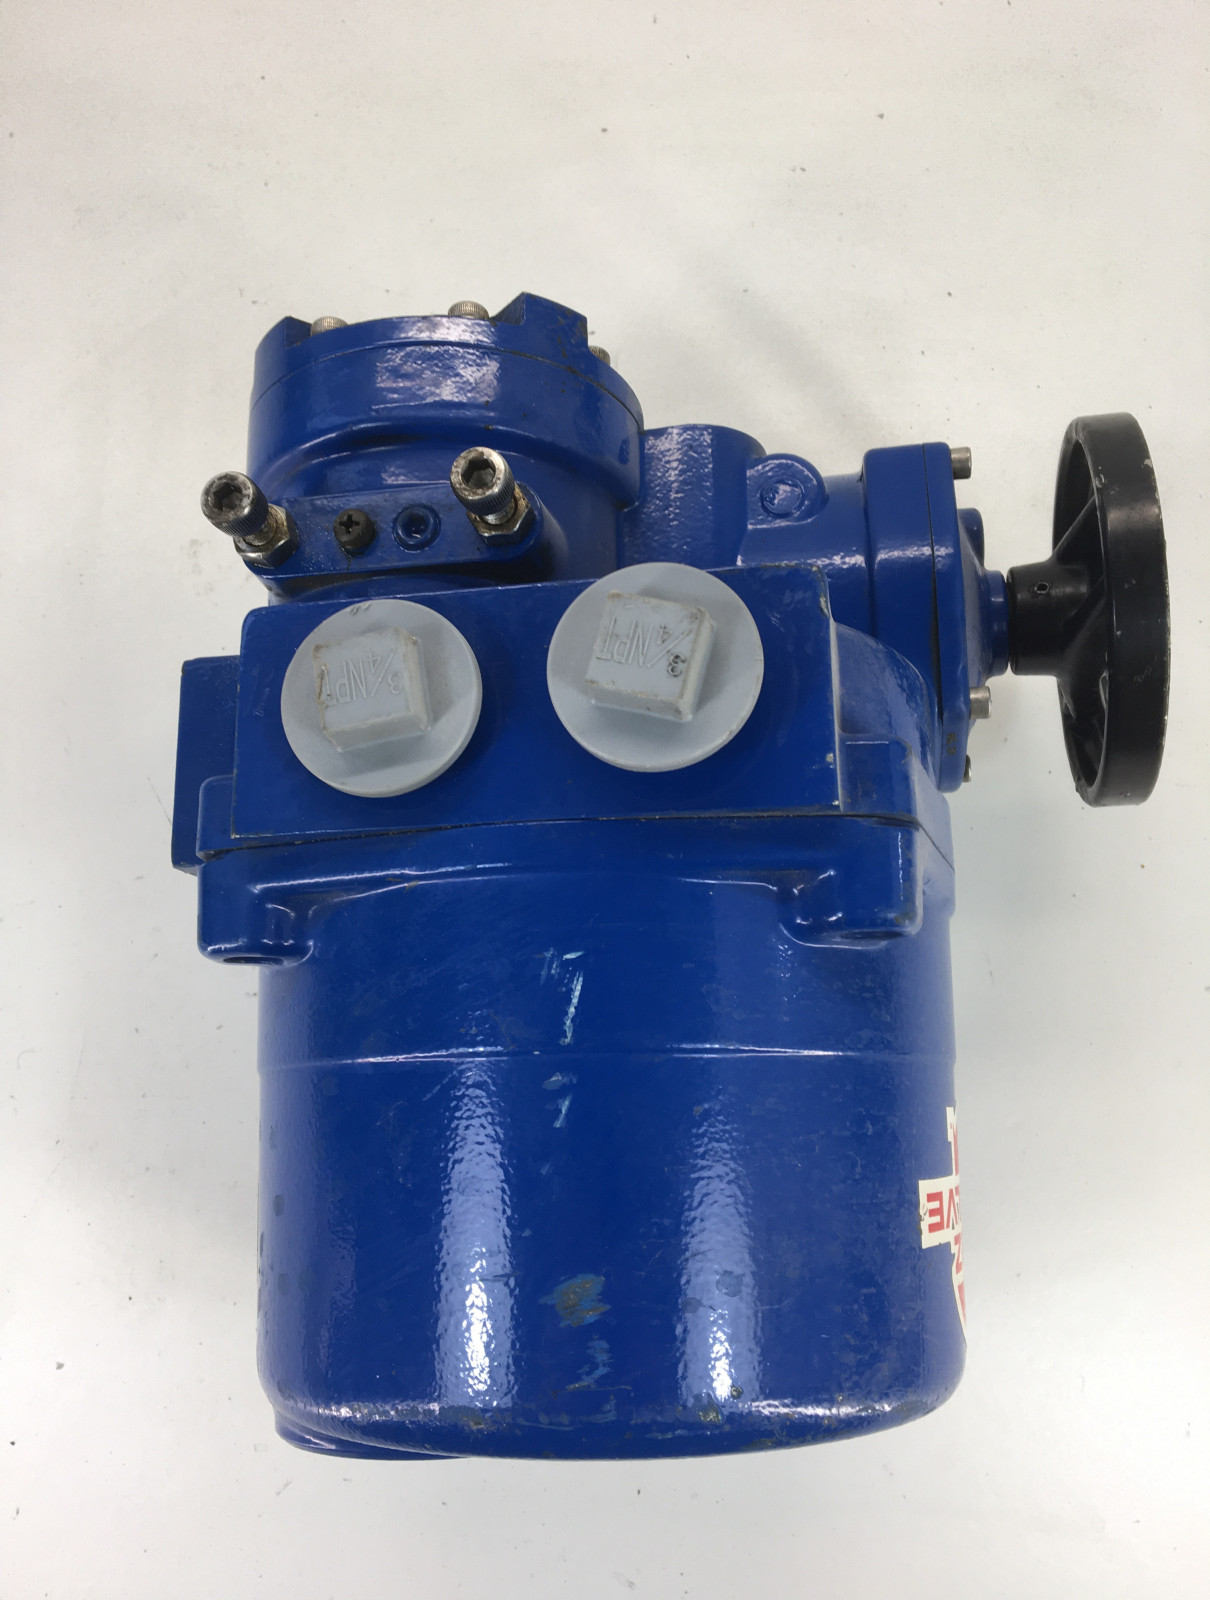 ABZ Valves & Controls TYPE ABZ6 S/N 967989 Electric Actuator